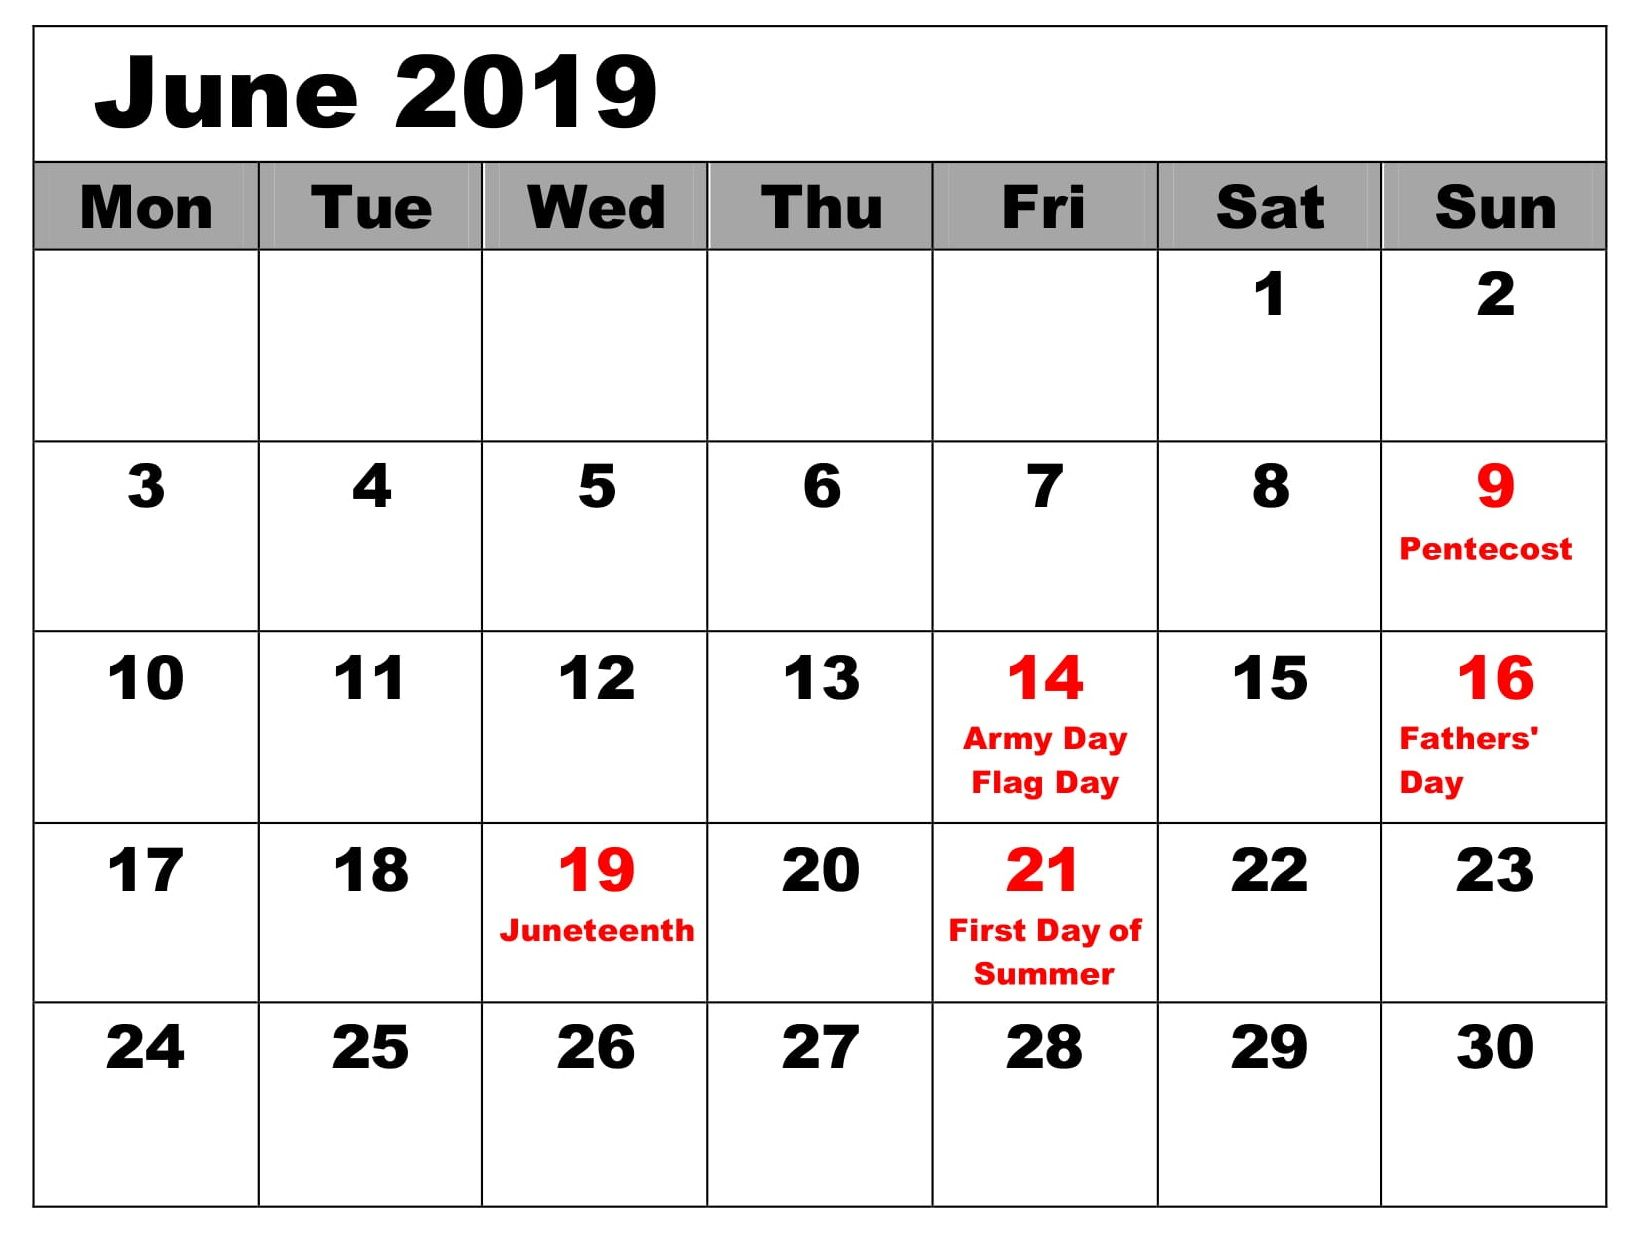 Calendar June 2019 With Holidays Excel With Images June 2019